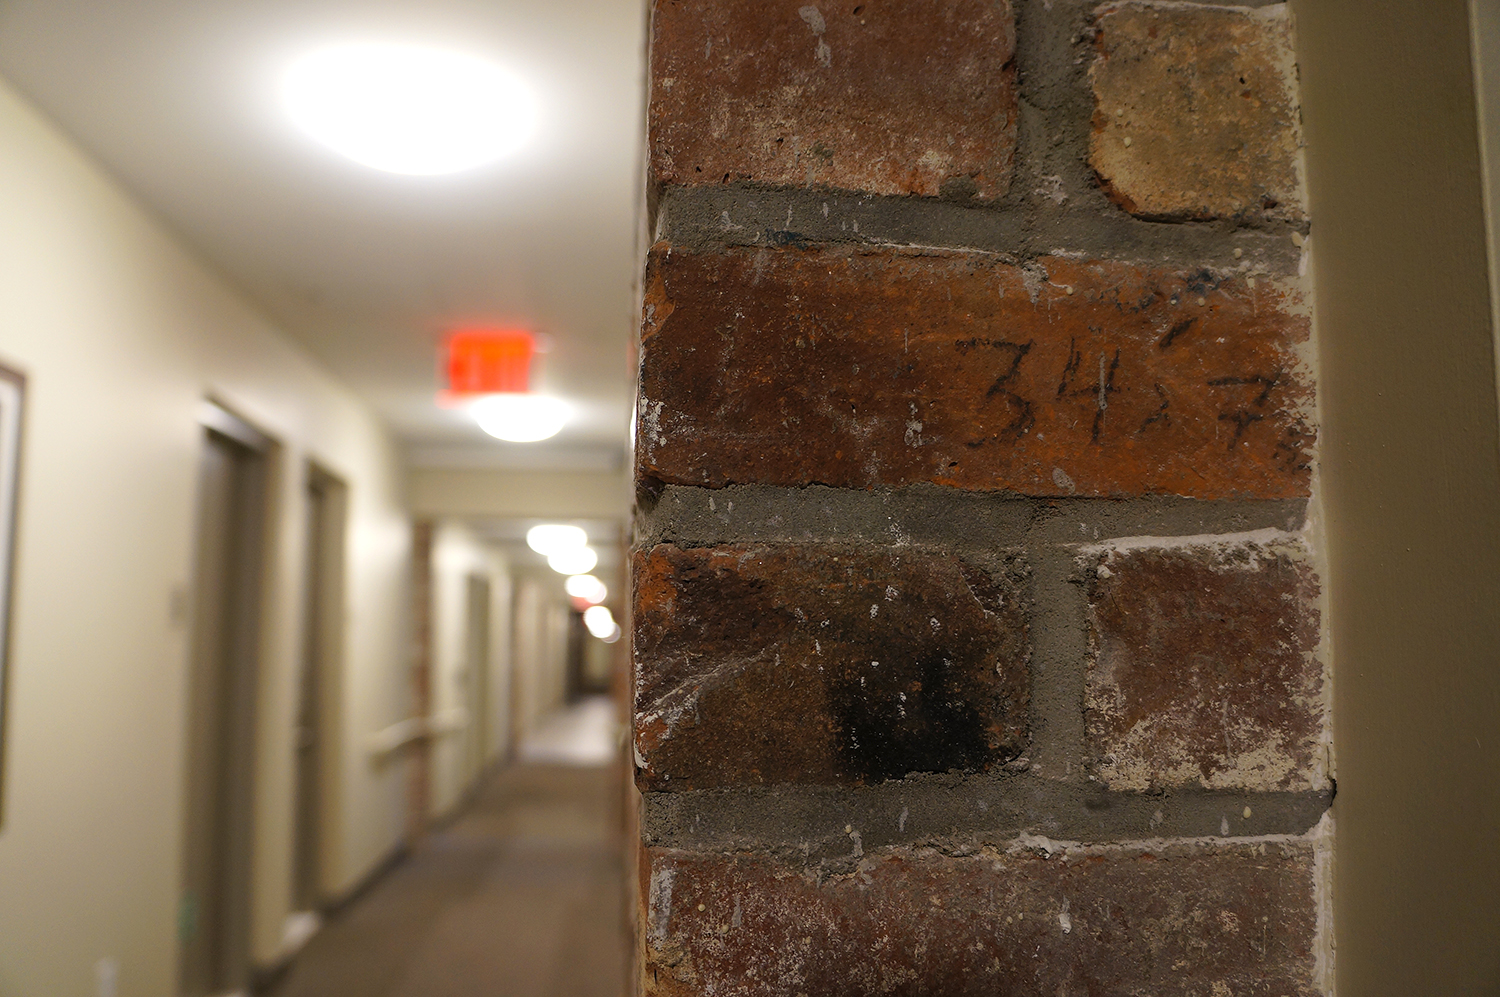 An exposed piece of the brick party wall that used to separate tenements before the renovation. photo by Rebecca Baird-Remba